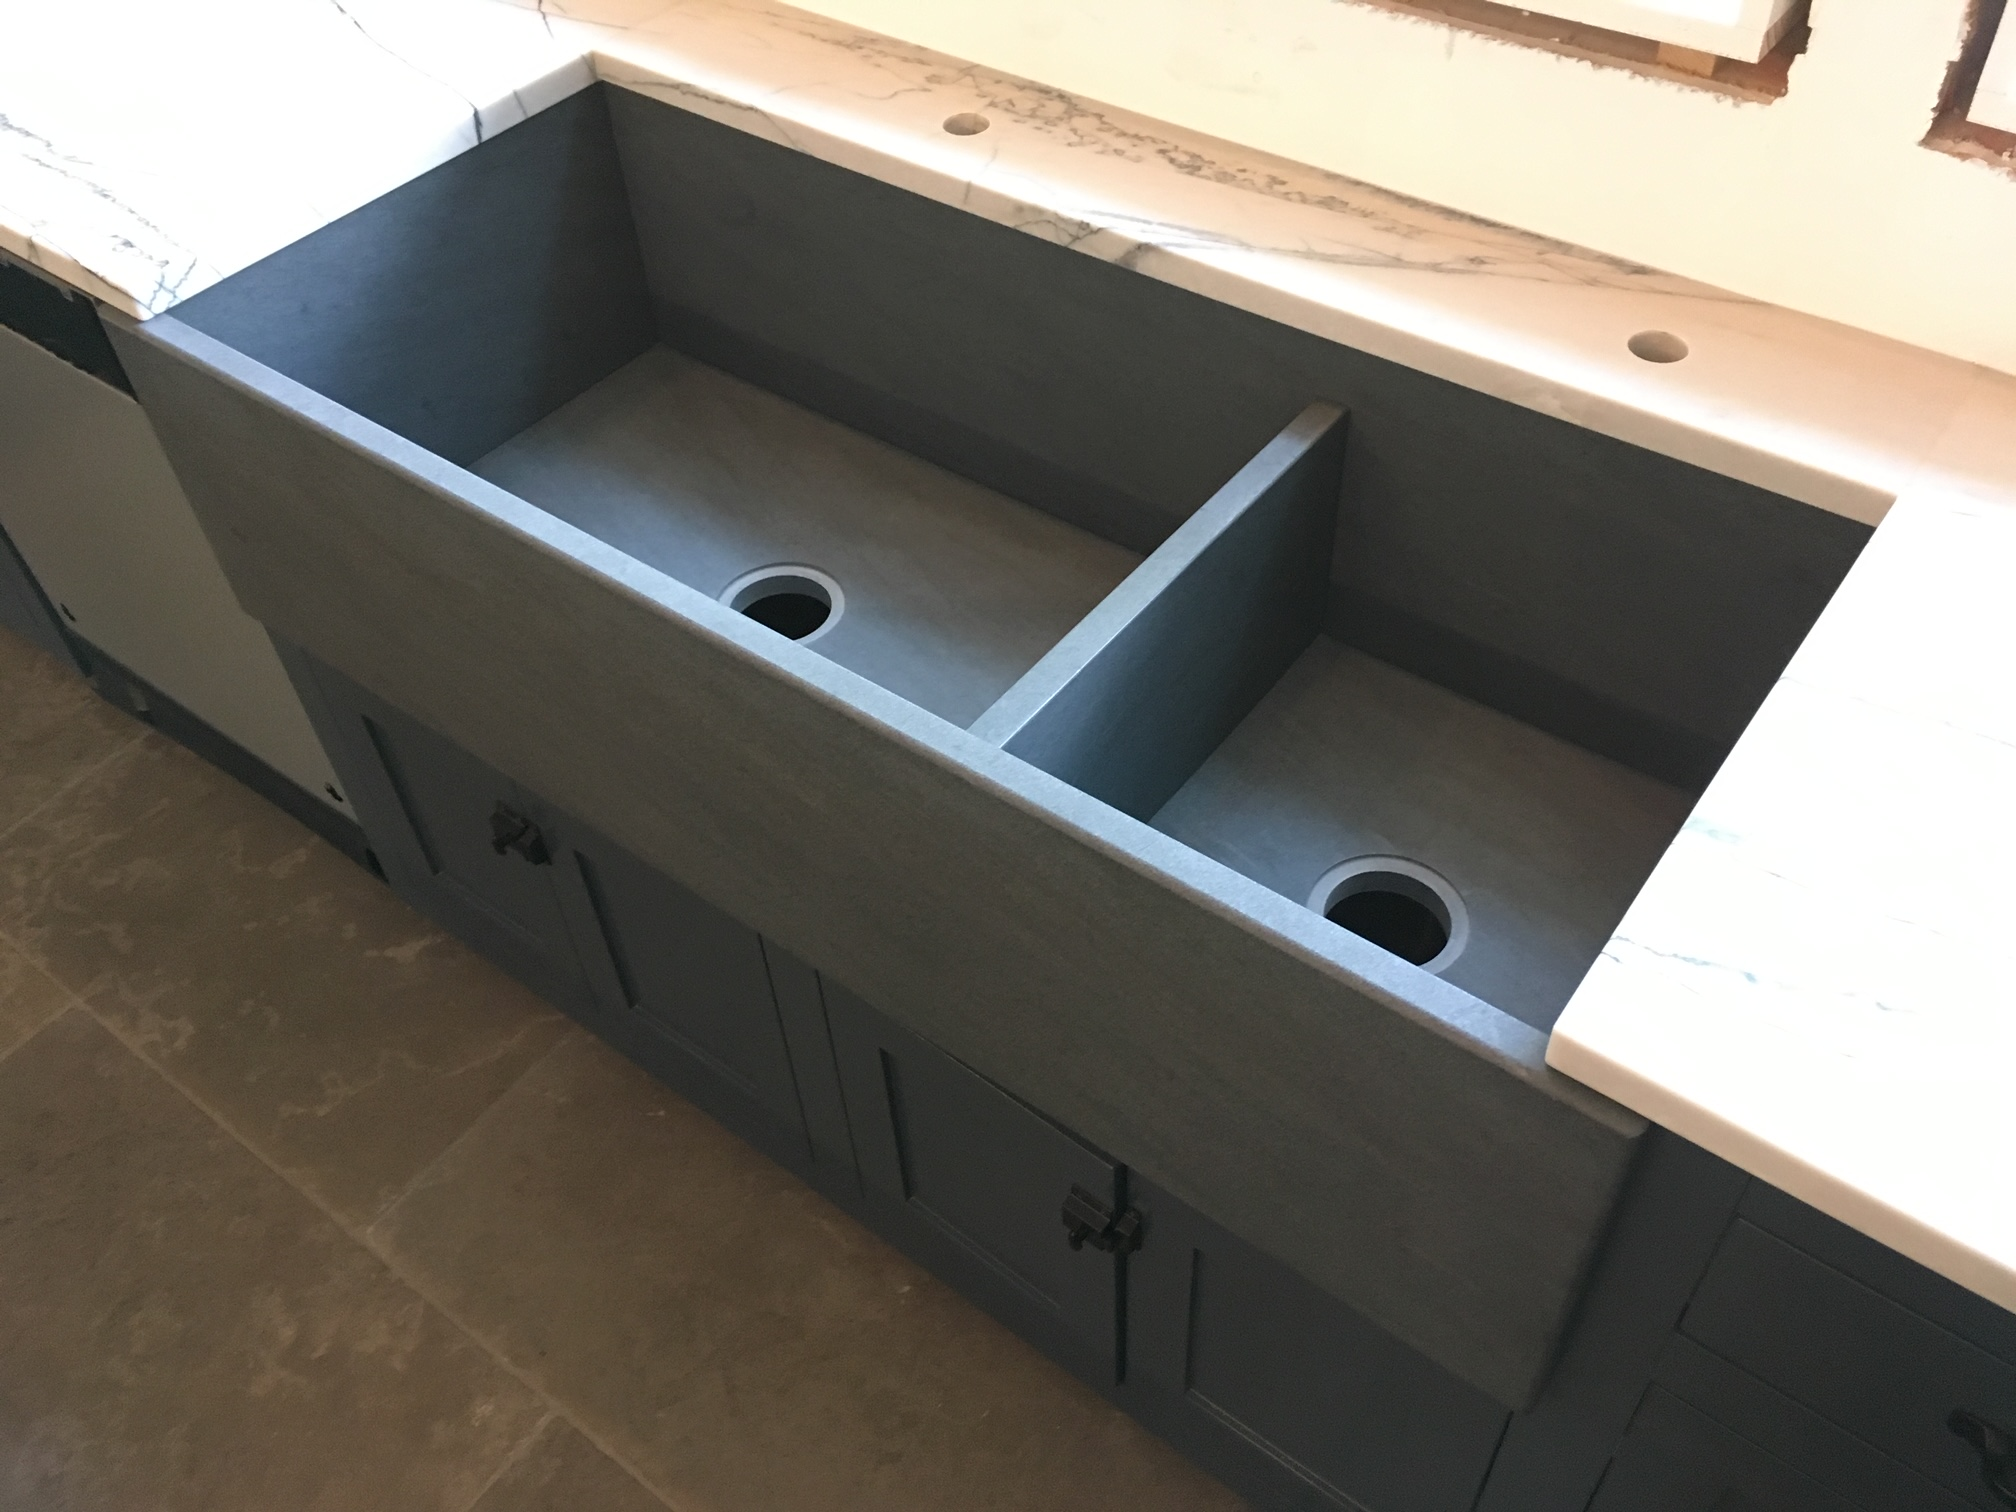 New Pietra Cardosa Granite Farm Sink